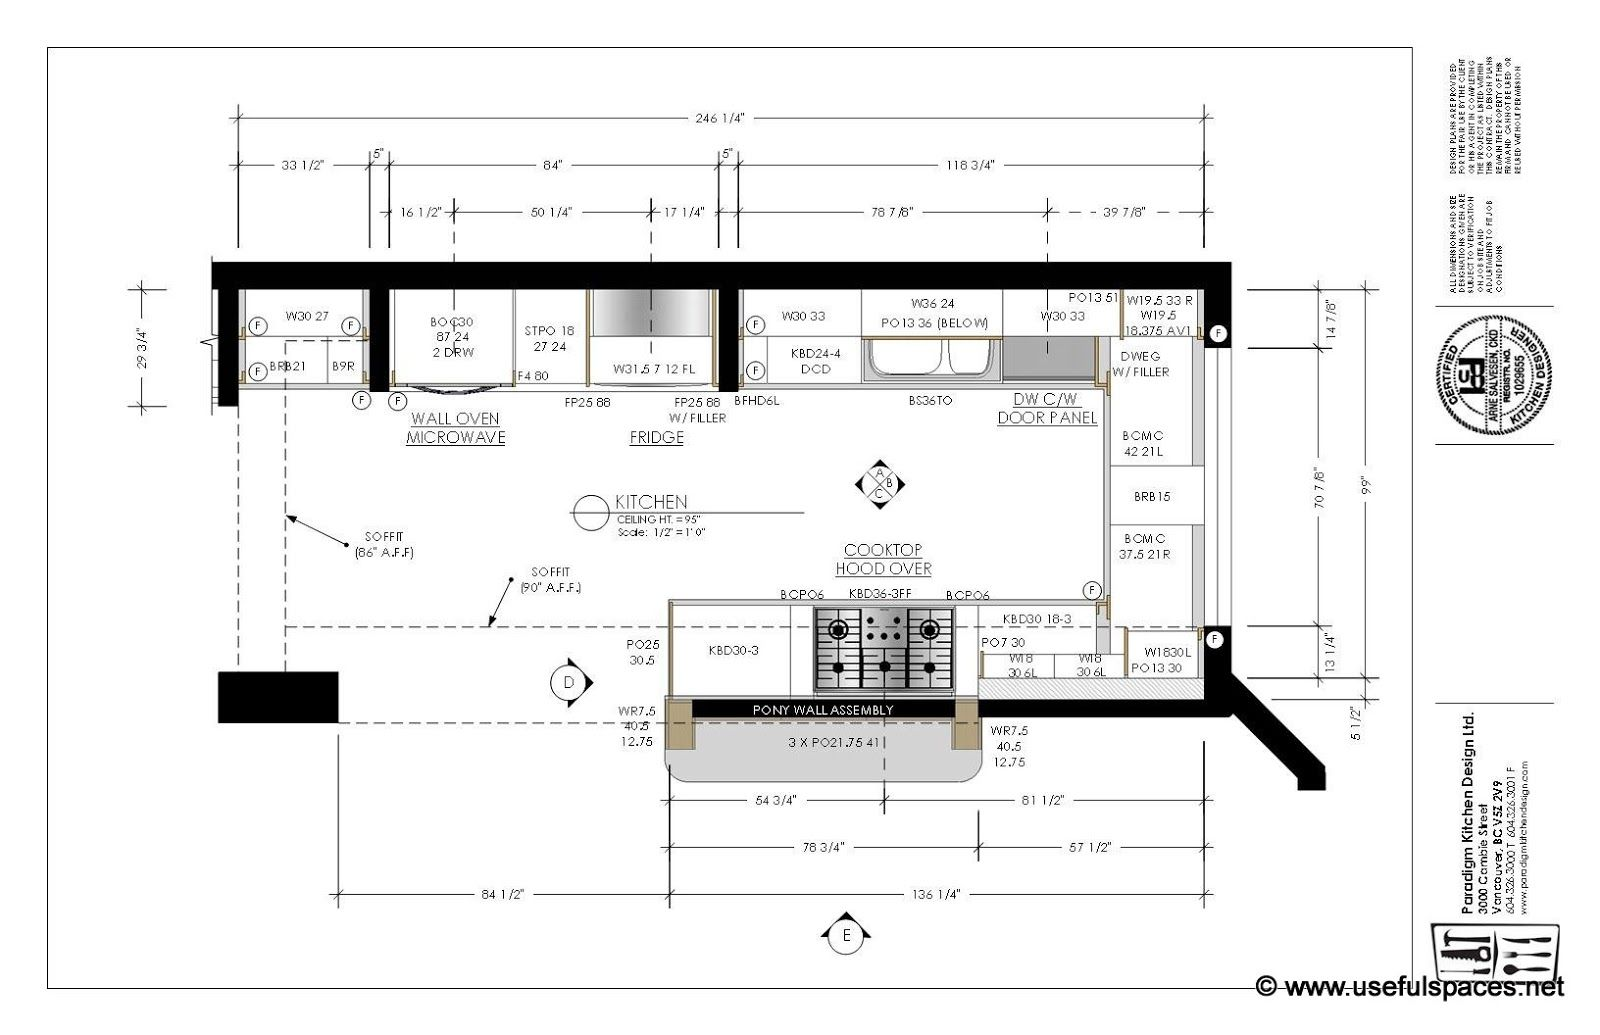 View Source Image Small Kitchen Design Layout Restaurant Floor Plan Best Kitchen Layout